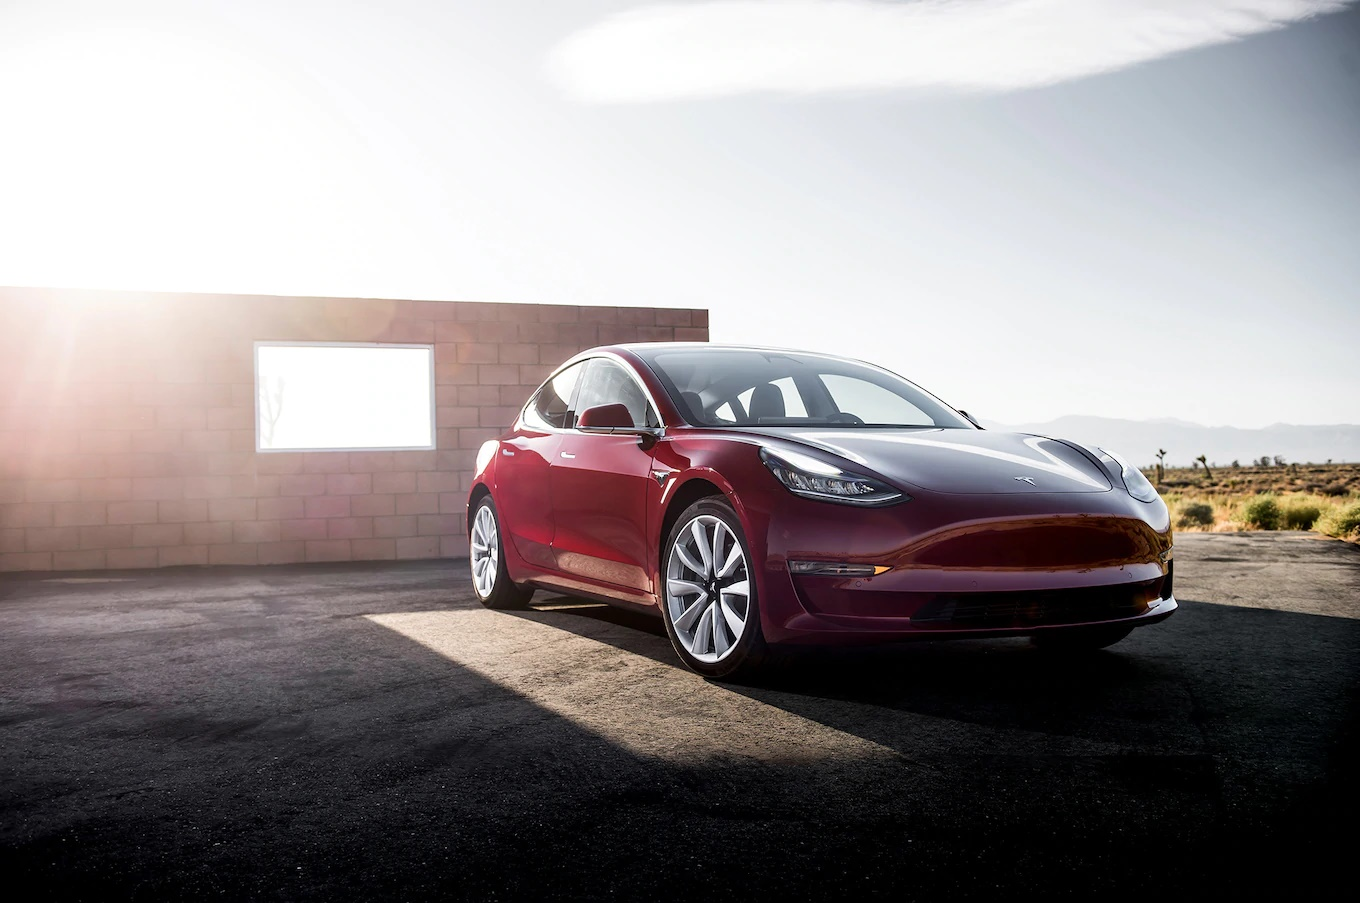 Tesla Model 3 China Release Date Elon Musk reduces Price of Electric Car, Deliveries have Started